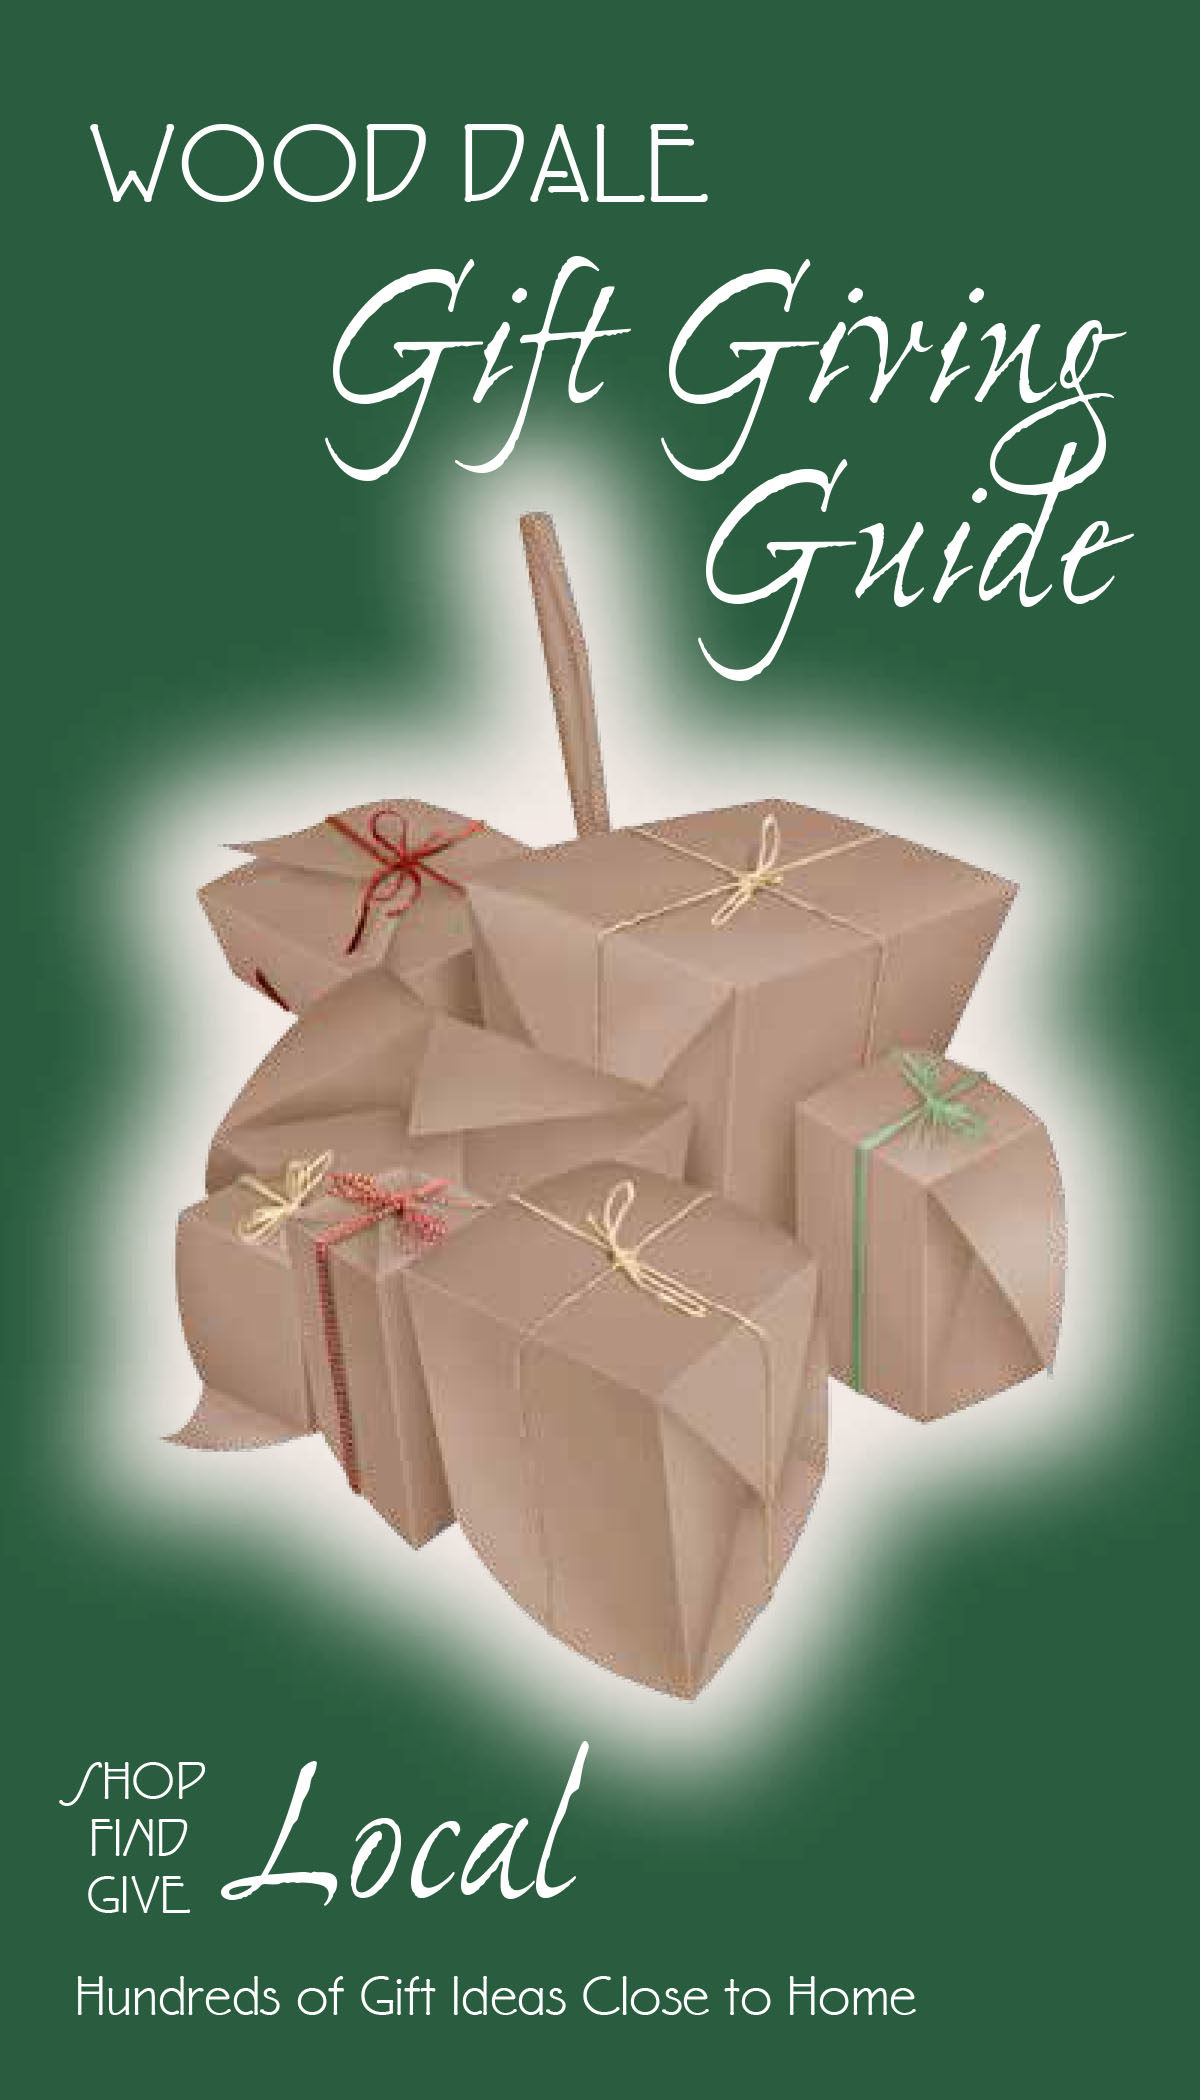 Wood Dale Gift Giving Guide